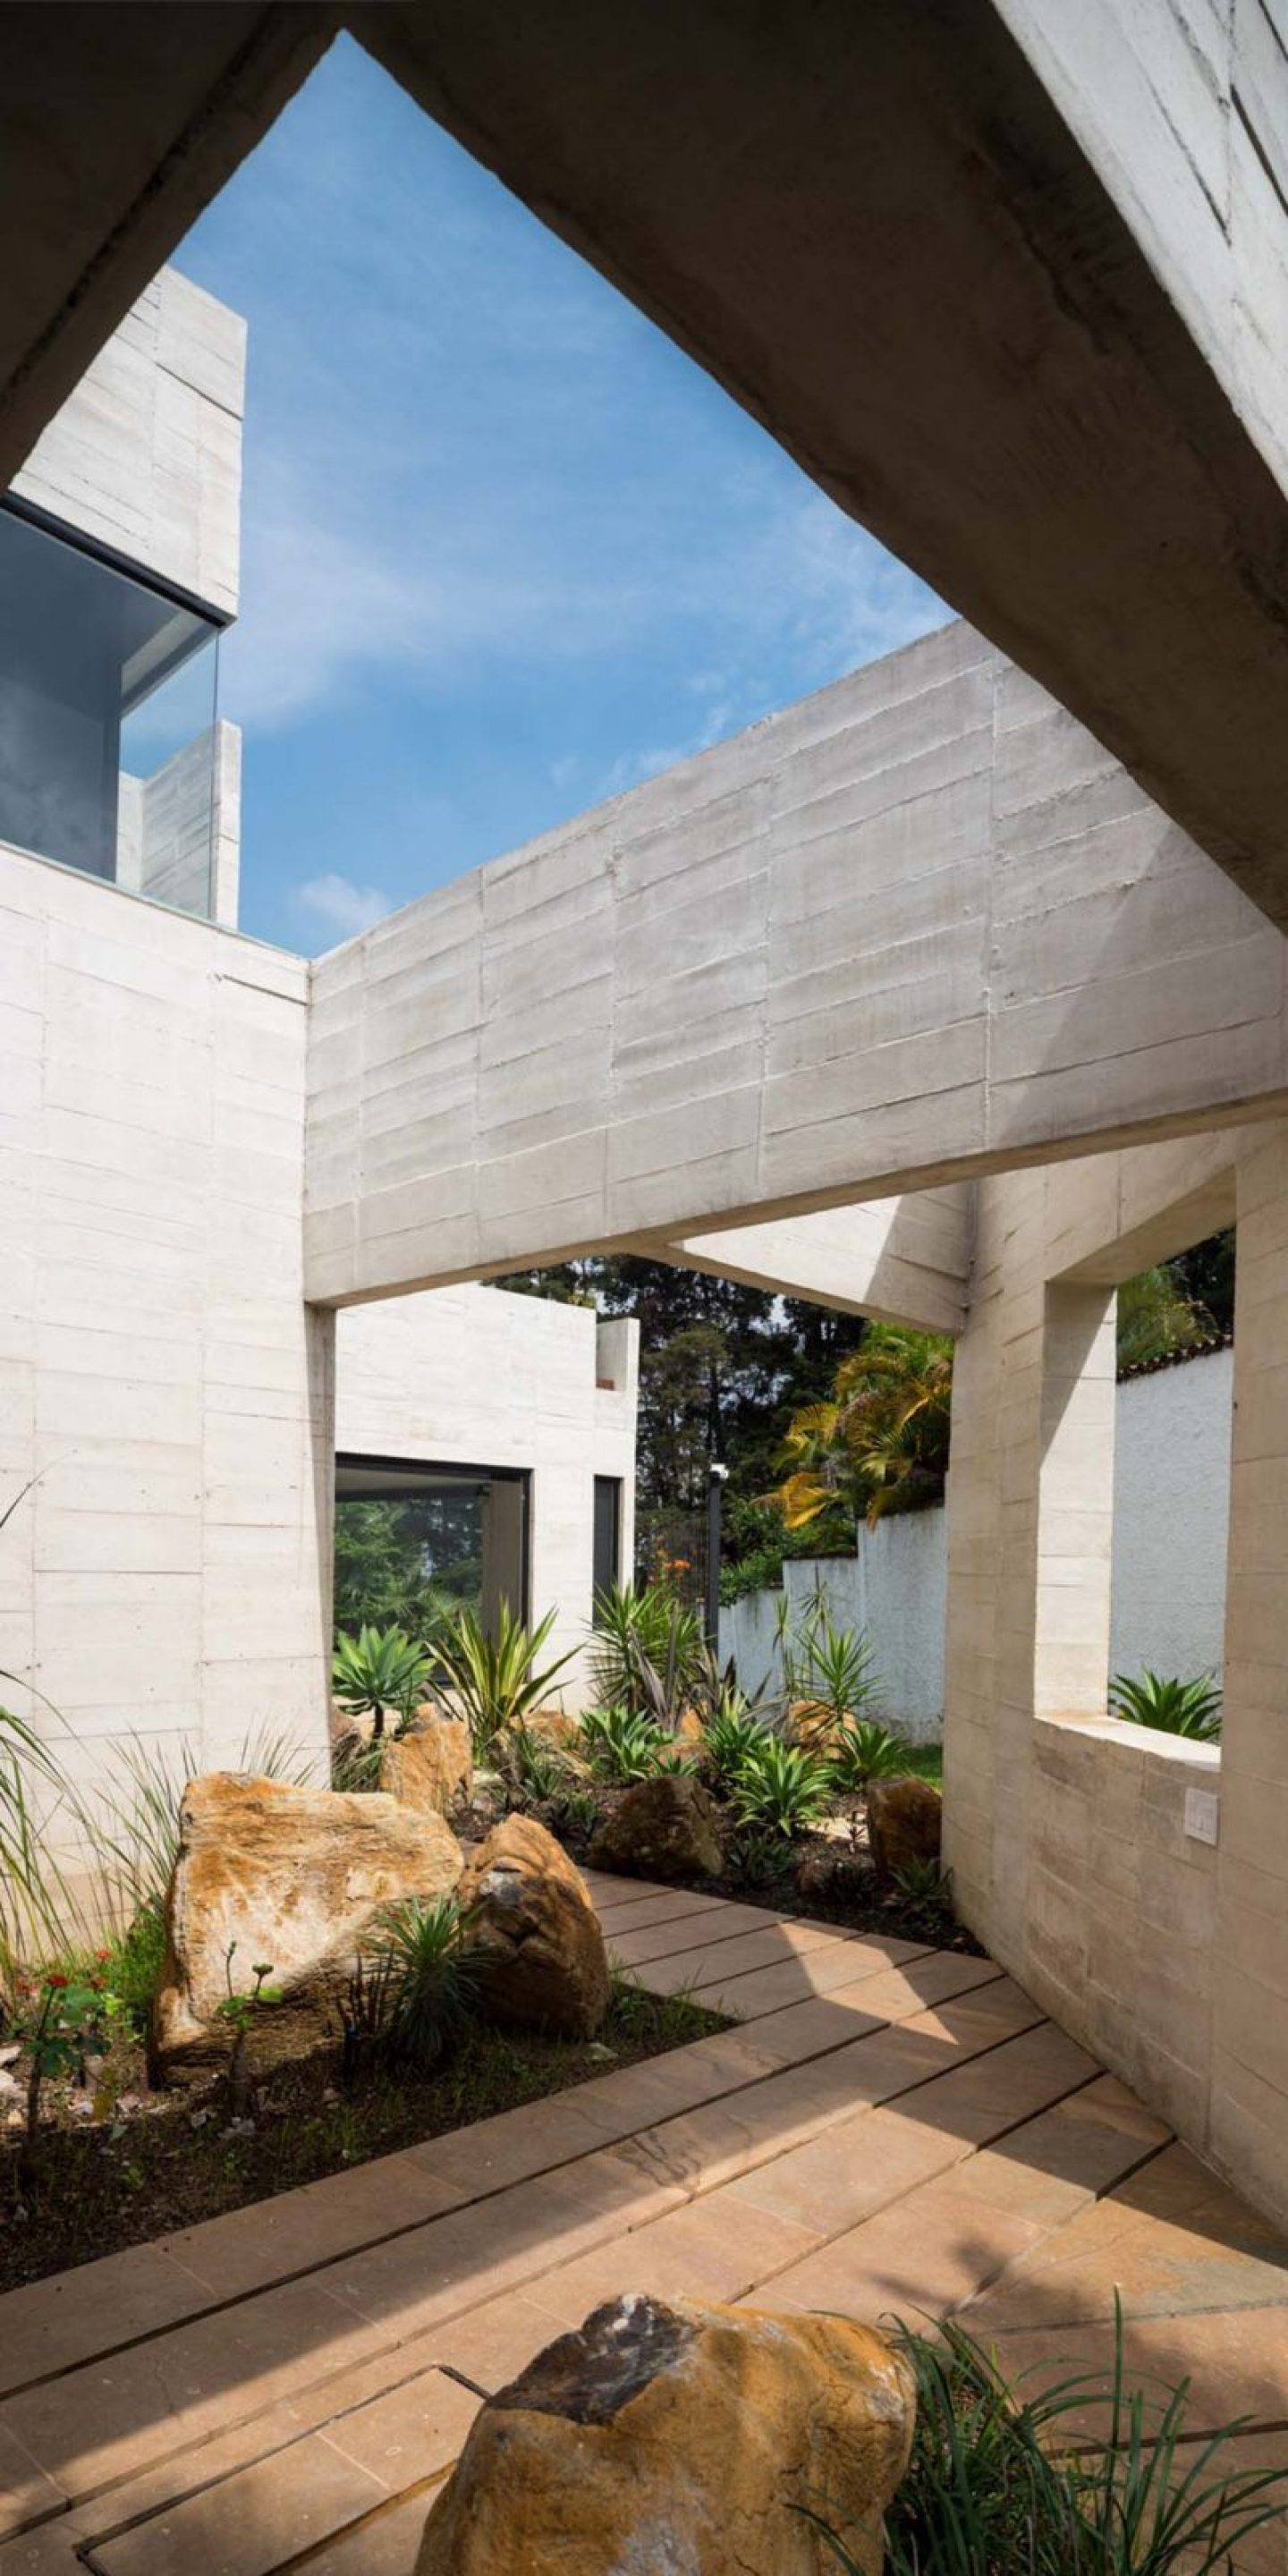 iGNANT_Architecture_Connatural_Garden_House_03